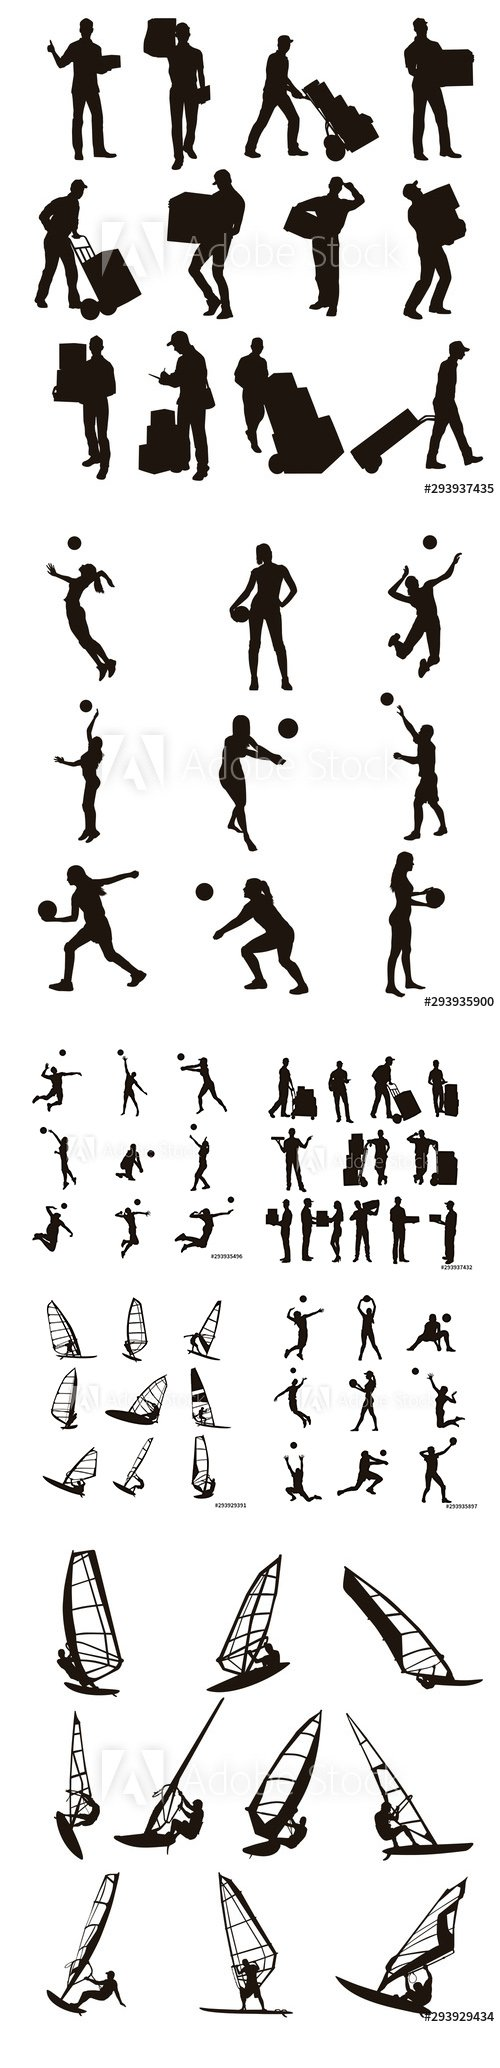 Delivery Man, Volleyball Player and Windsurfing Silhouettes